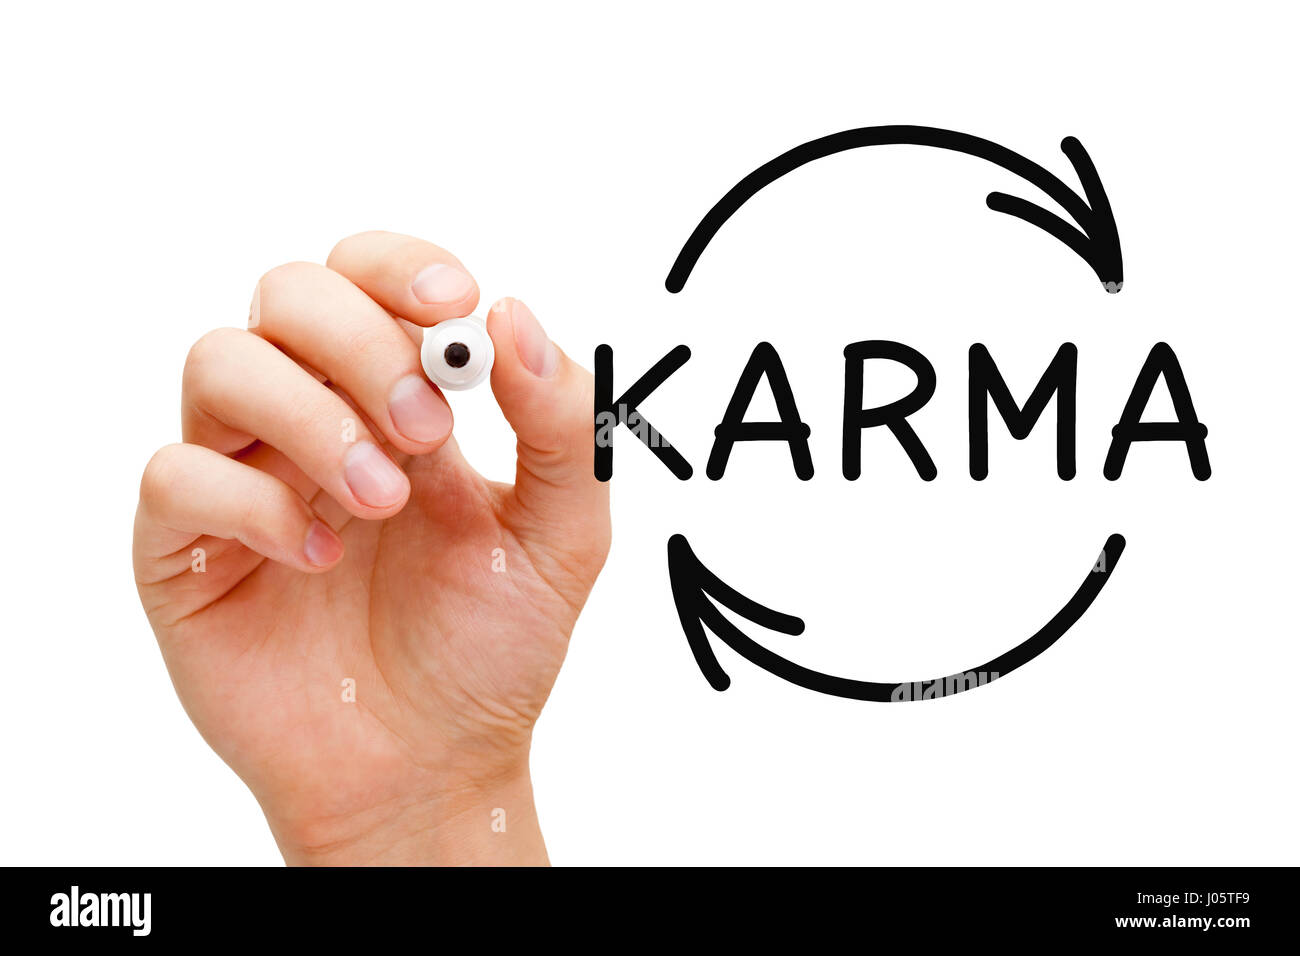 Hand drawing Karma Cycle concept with black marker on transparent wipe board. Stock Photo